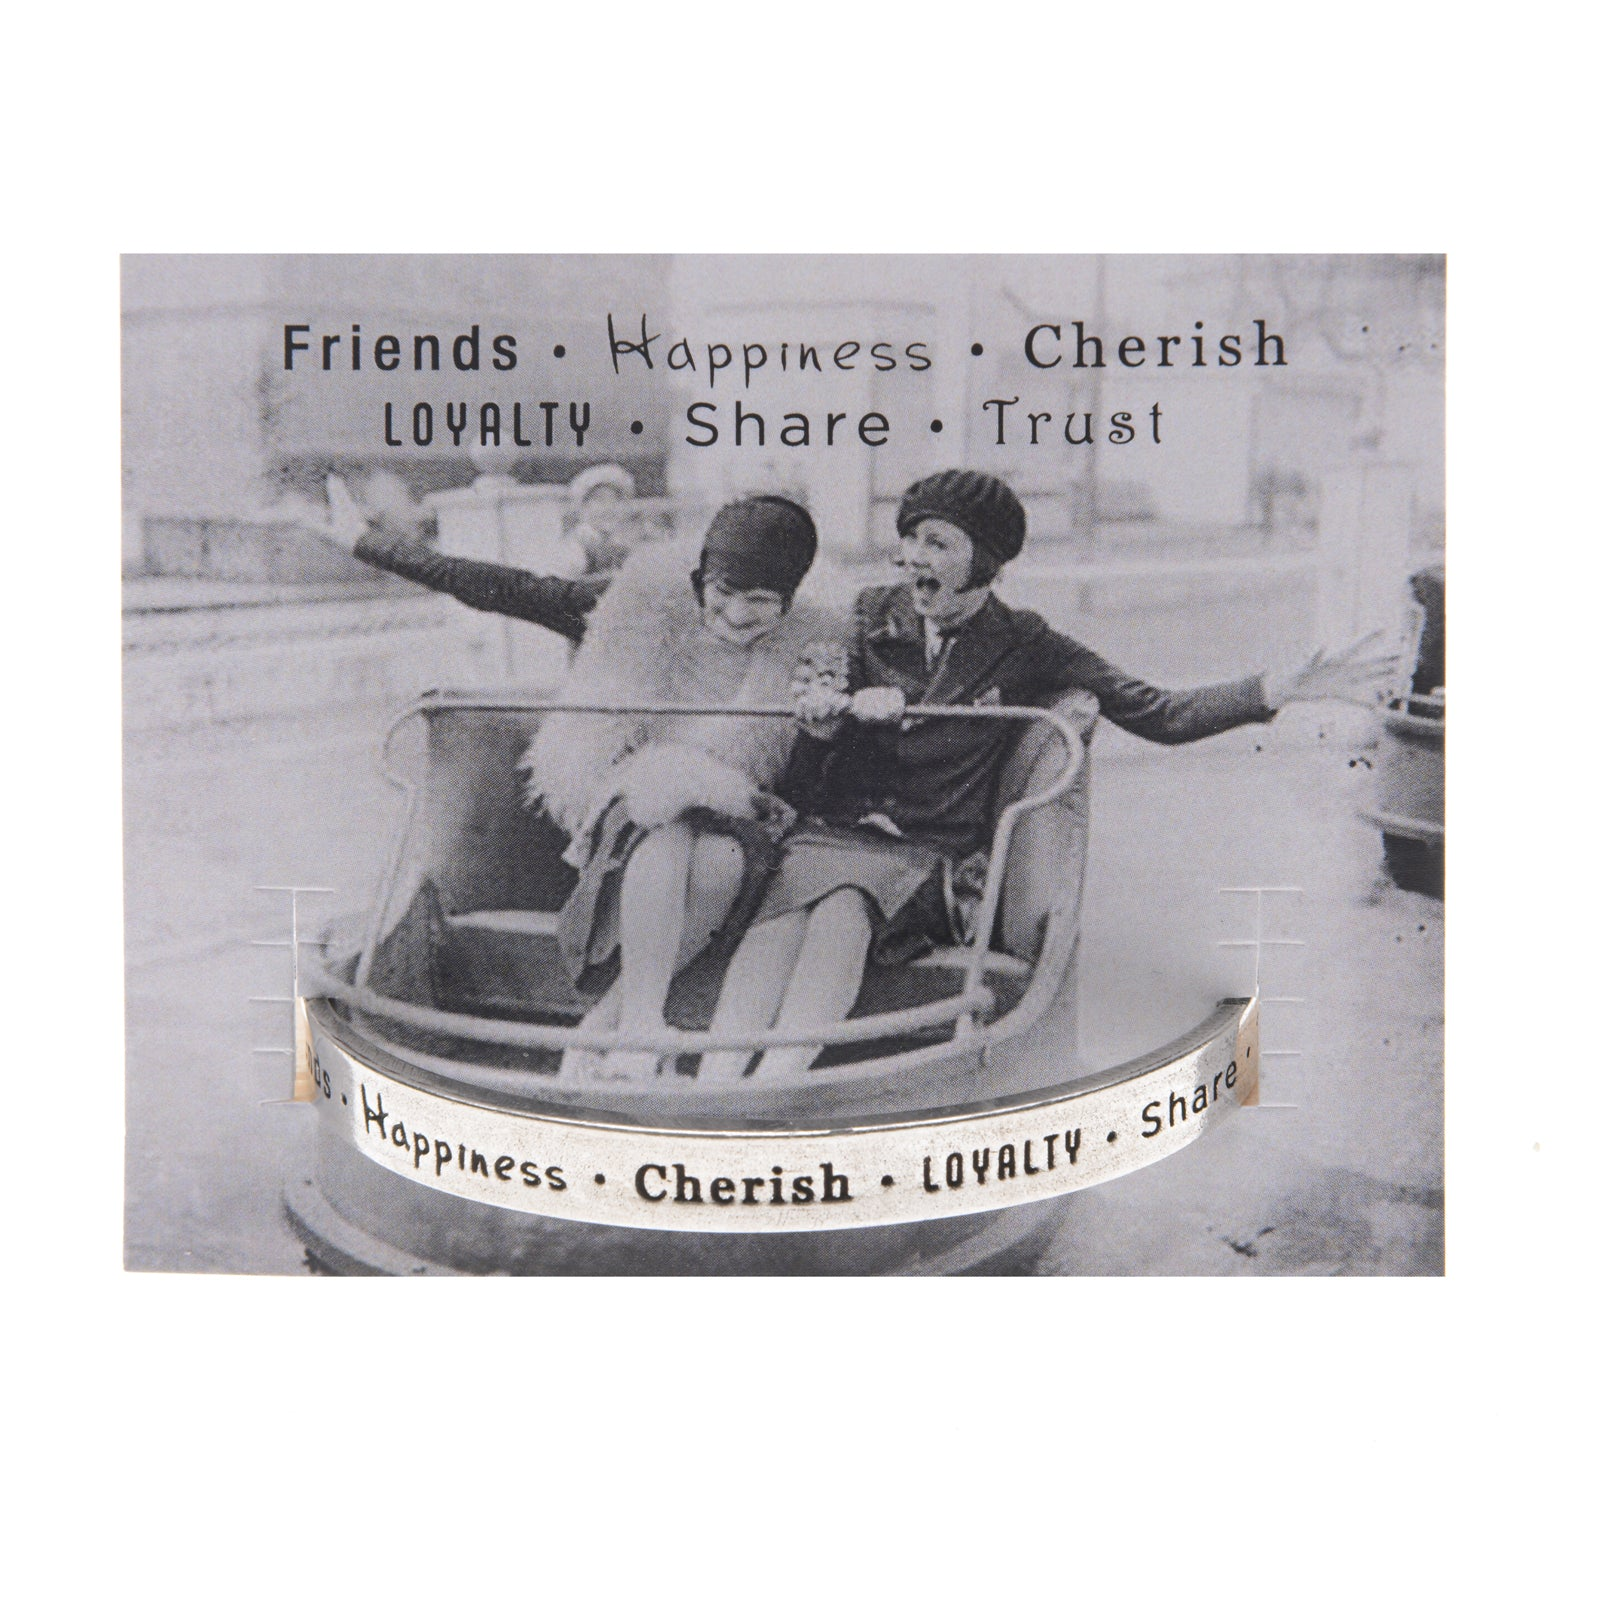 Friends-Happiness-Cherish Quotable Cuff Bracelet